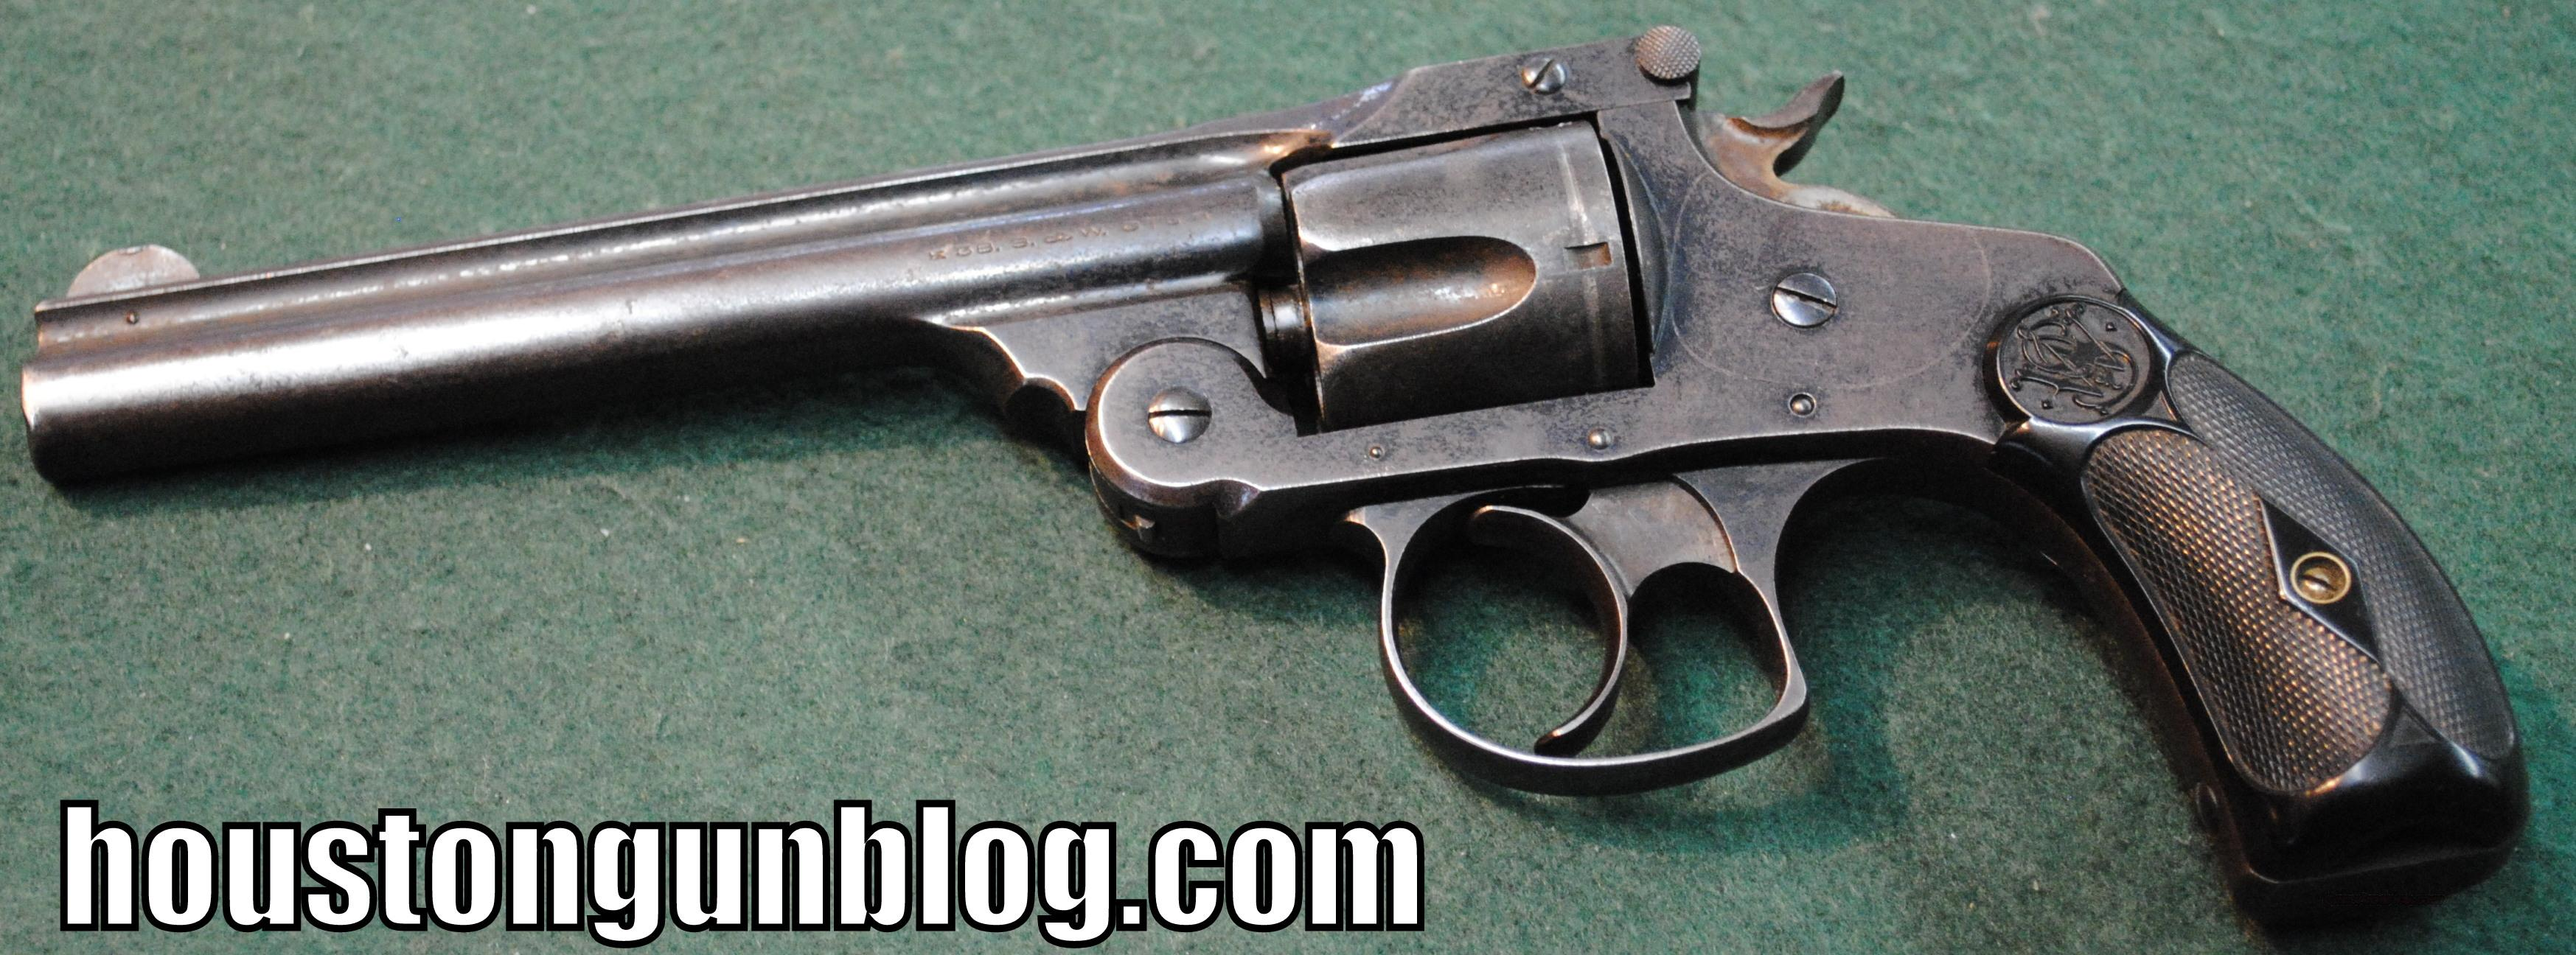 "Smith and Wesson 38SW Revolver with Scarce 6"" Barrel  Guns > Pistols > Smith & Wesson Revolvers > Pre-1945"